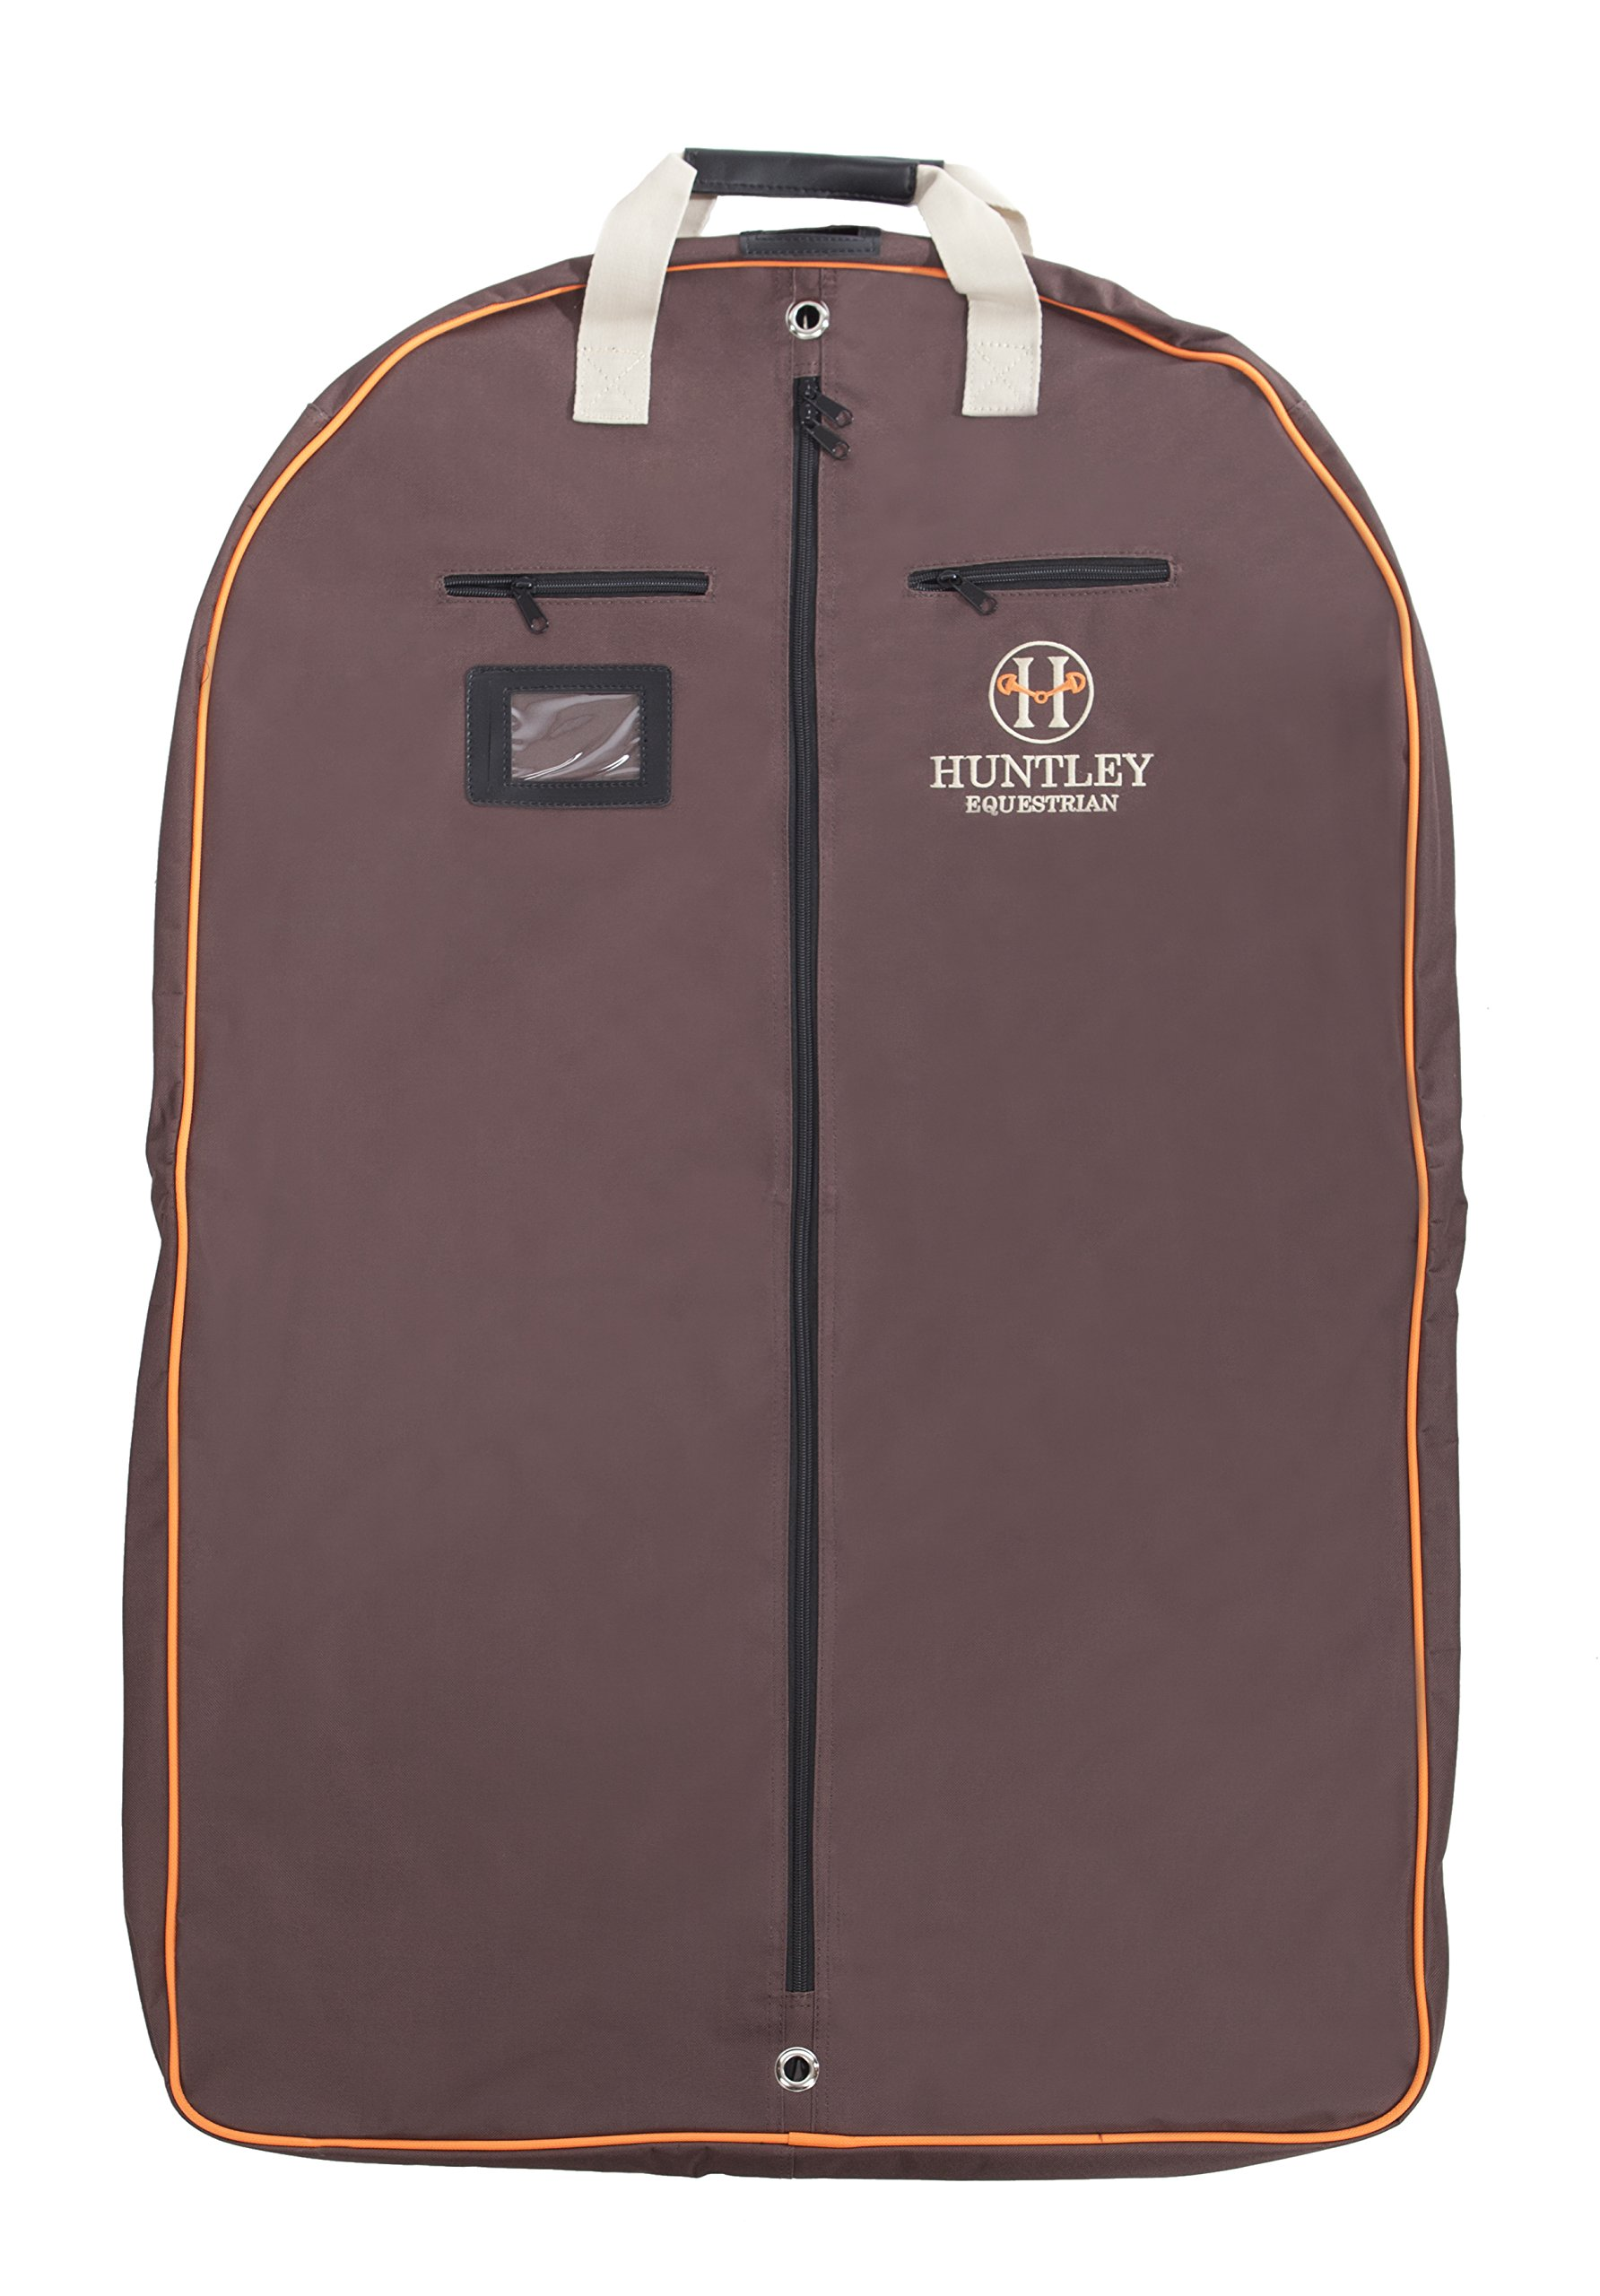 Huntley Equestrian Deluxe Garment Bag by Huntley